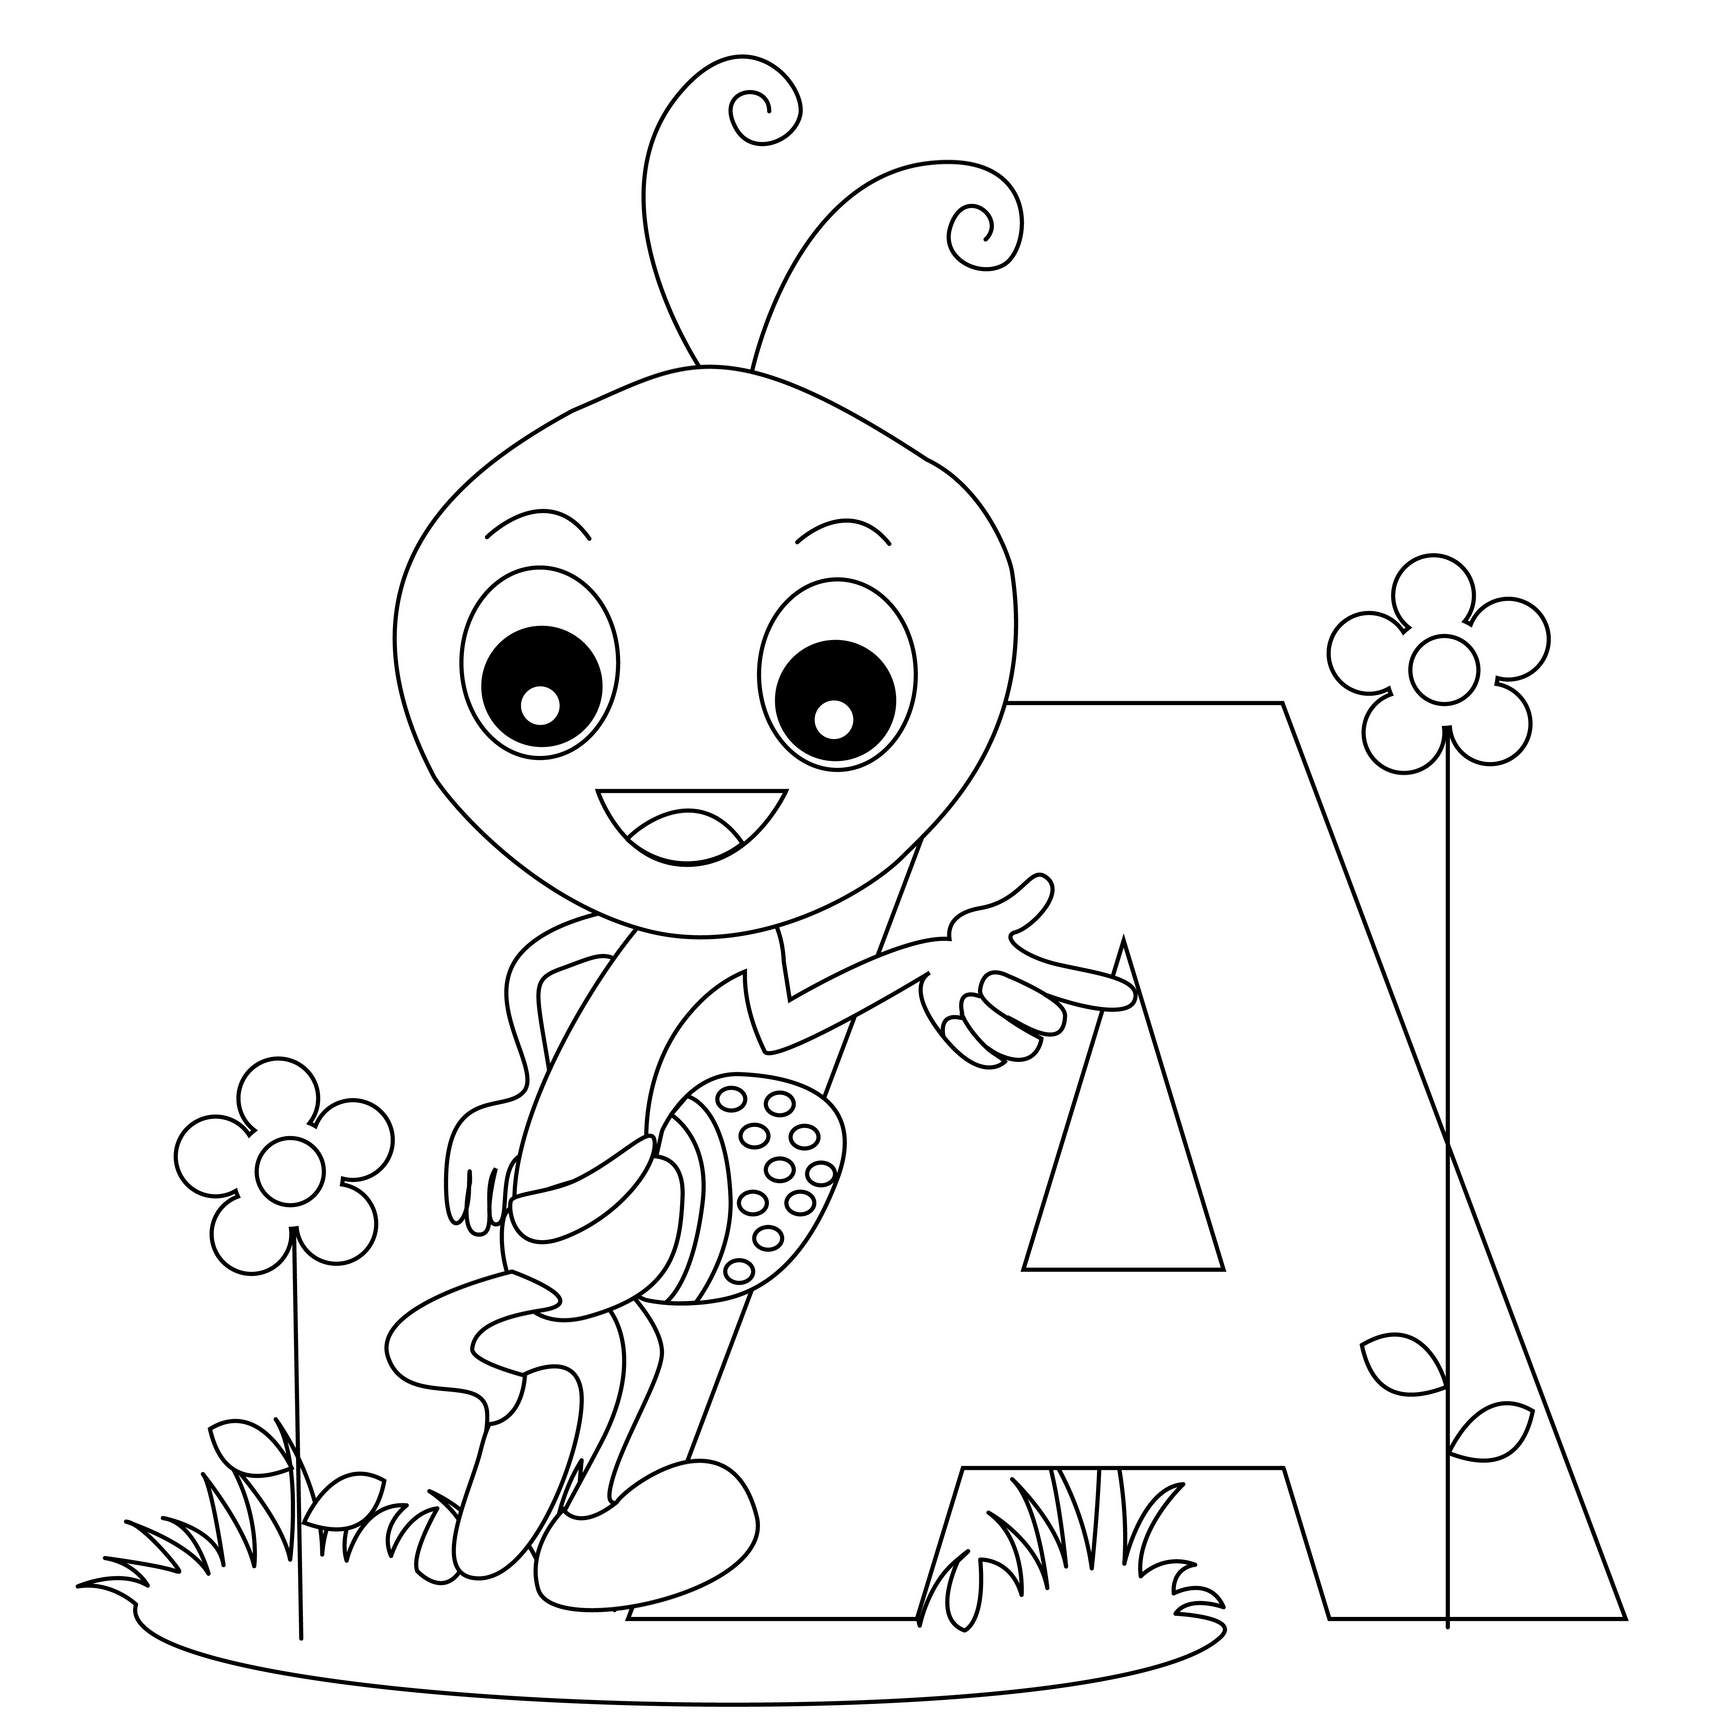 Coloring Pages Coloring Pages Alphabet Letters alphabet letters coloring pages futpal com of the eassume